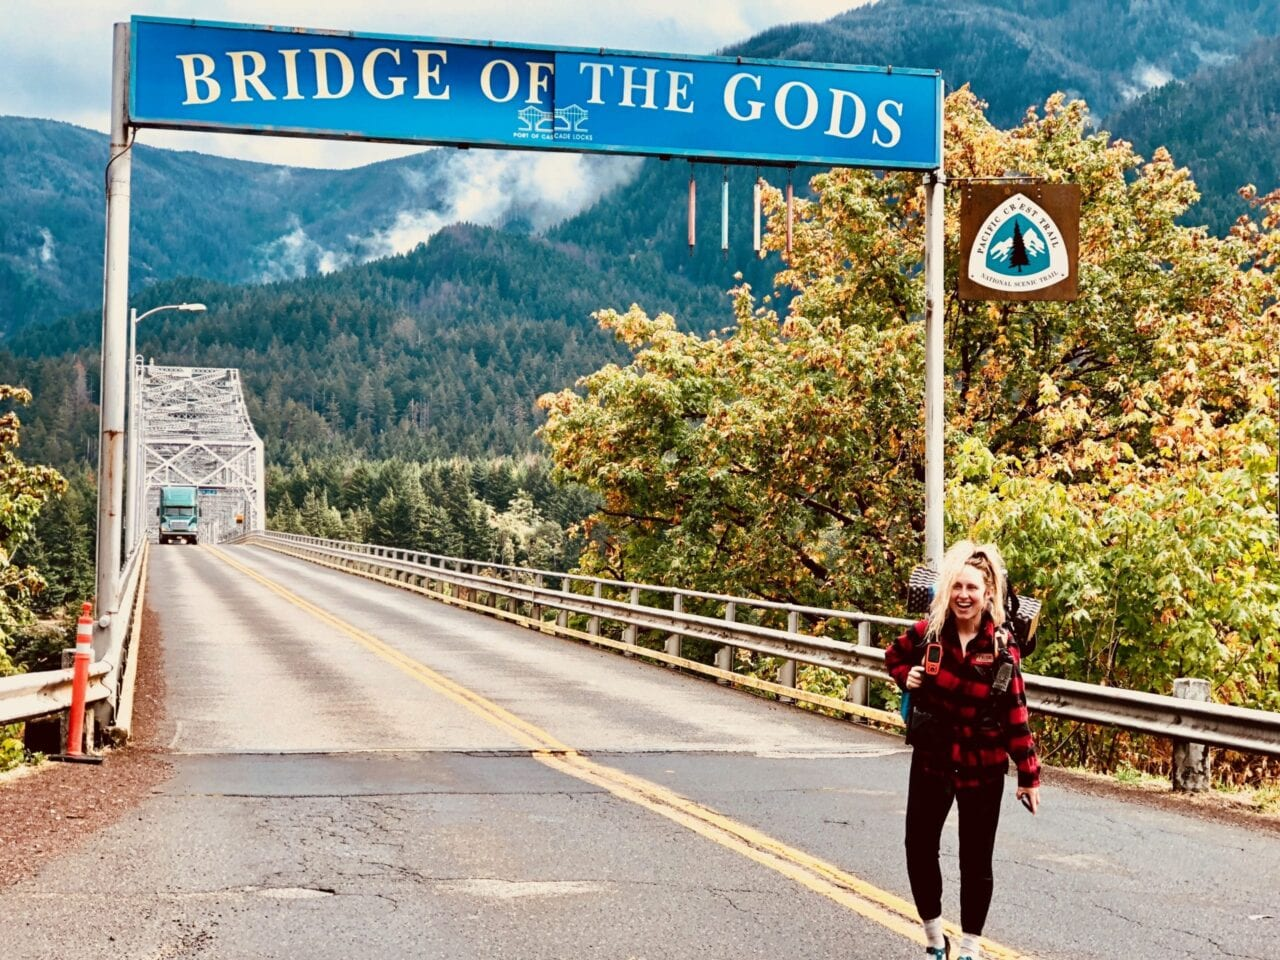 A woman standing in front of the Bridge of Gods sign.